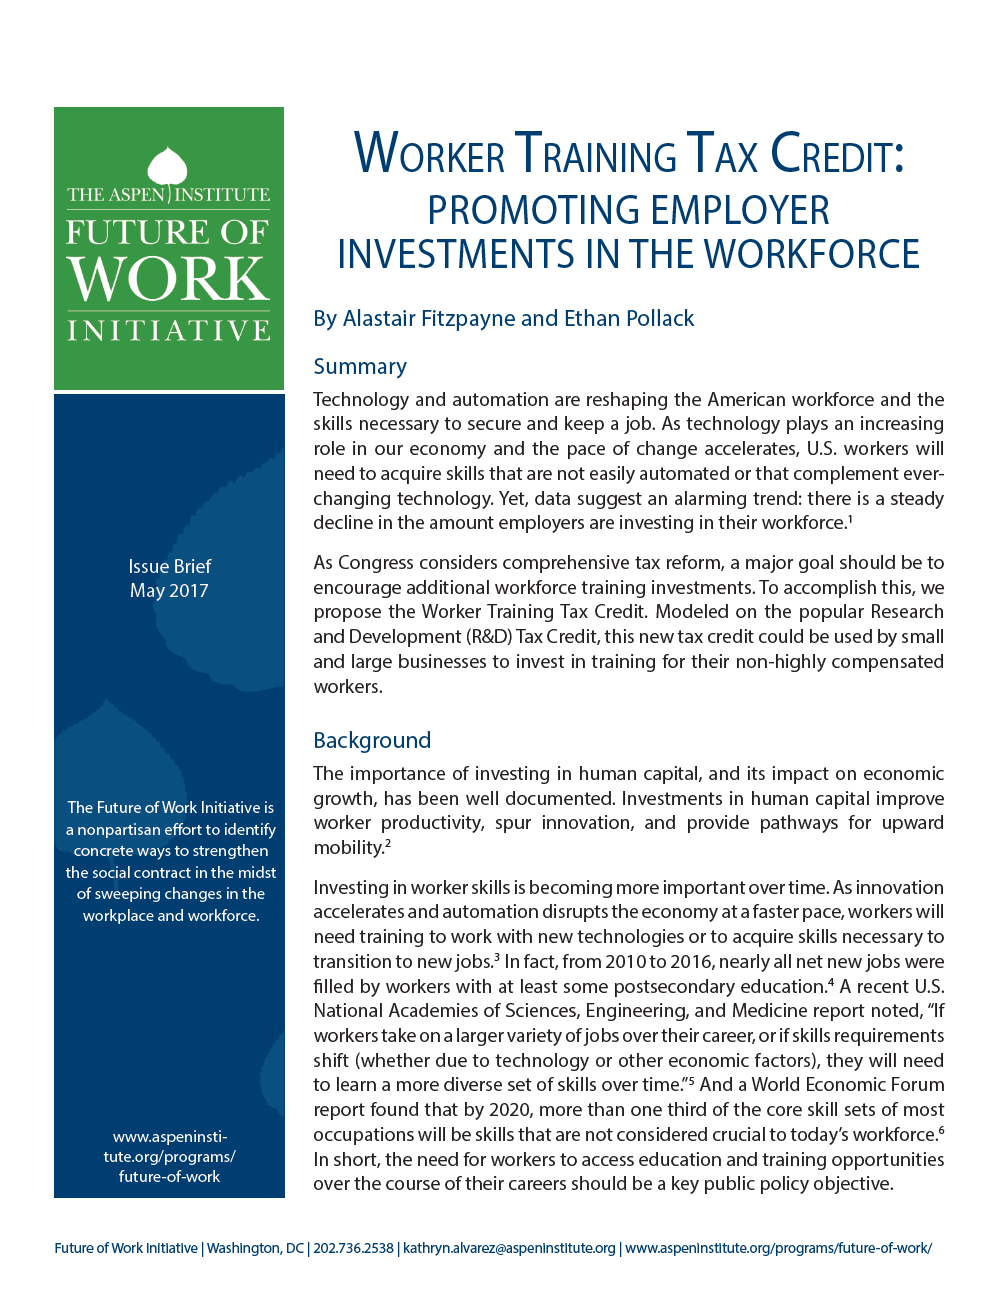 Worker Training Tax Credit: Promoting Employer Investments in the Workforce